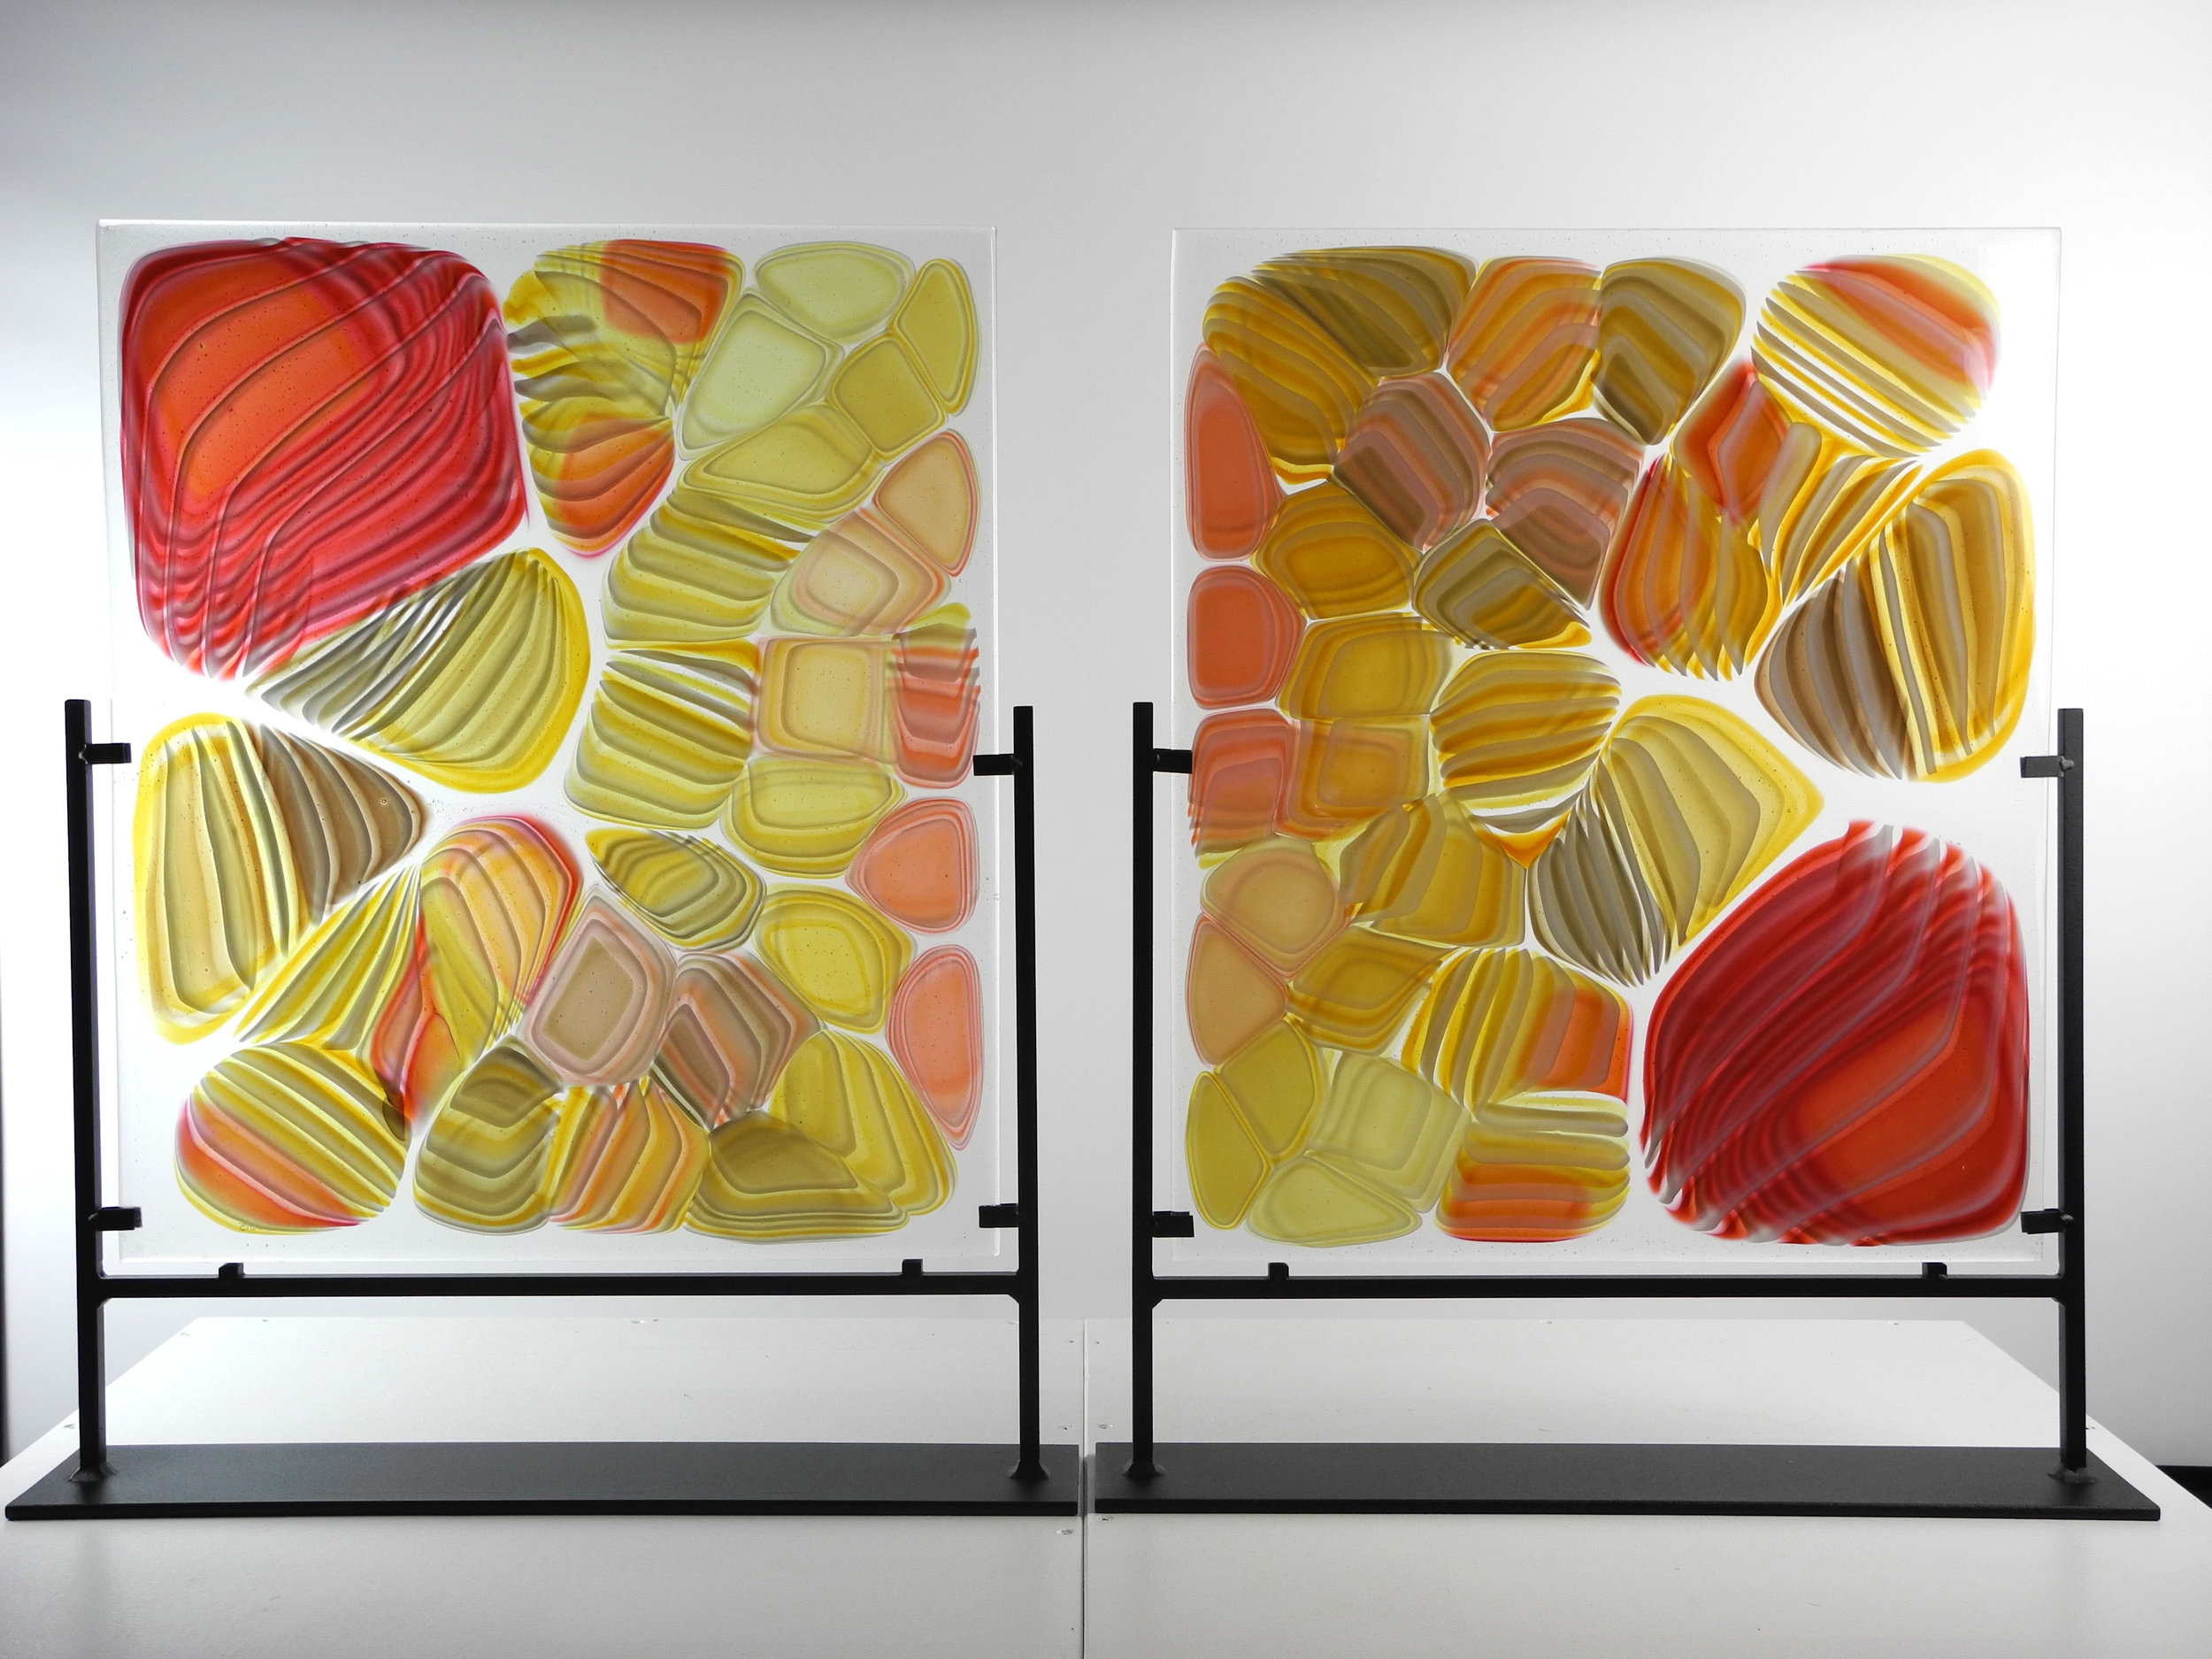 """""""Divide"""" From the Strata Shift Series (NOT TITLE)   Fused Art Glass  24.5 """" x 17.0 """" x 4.0 """"  AKA Sliced Candy Pattern"""